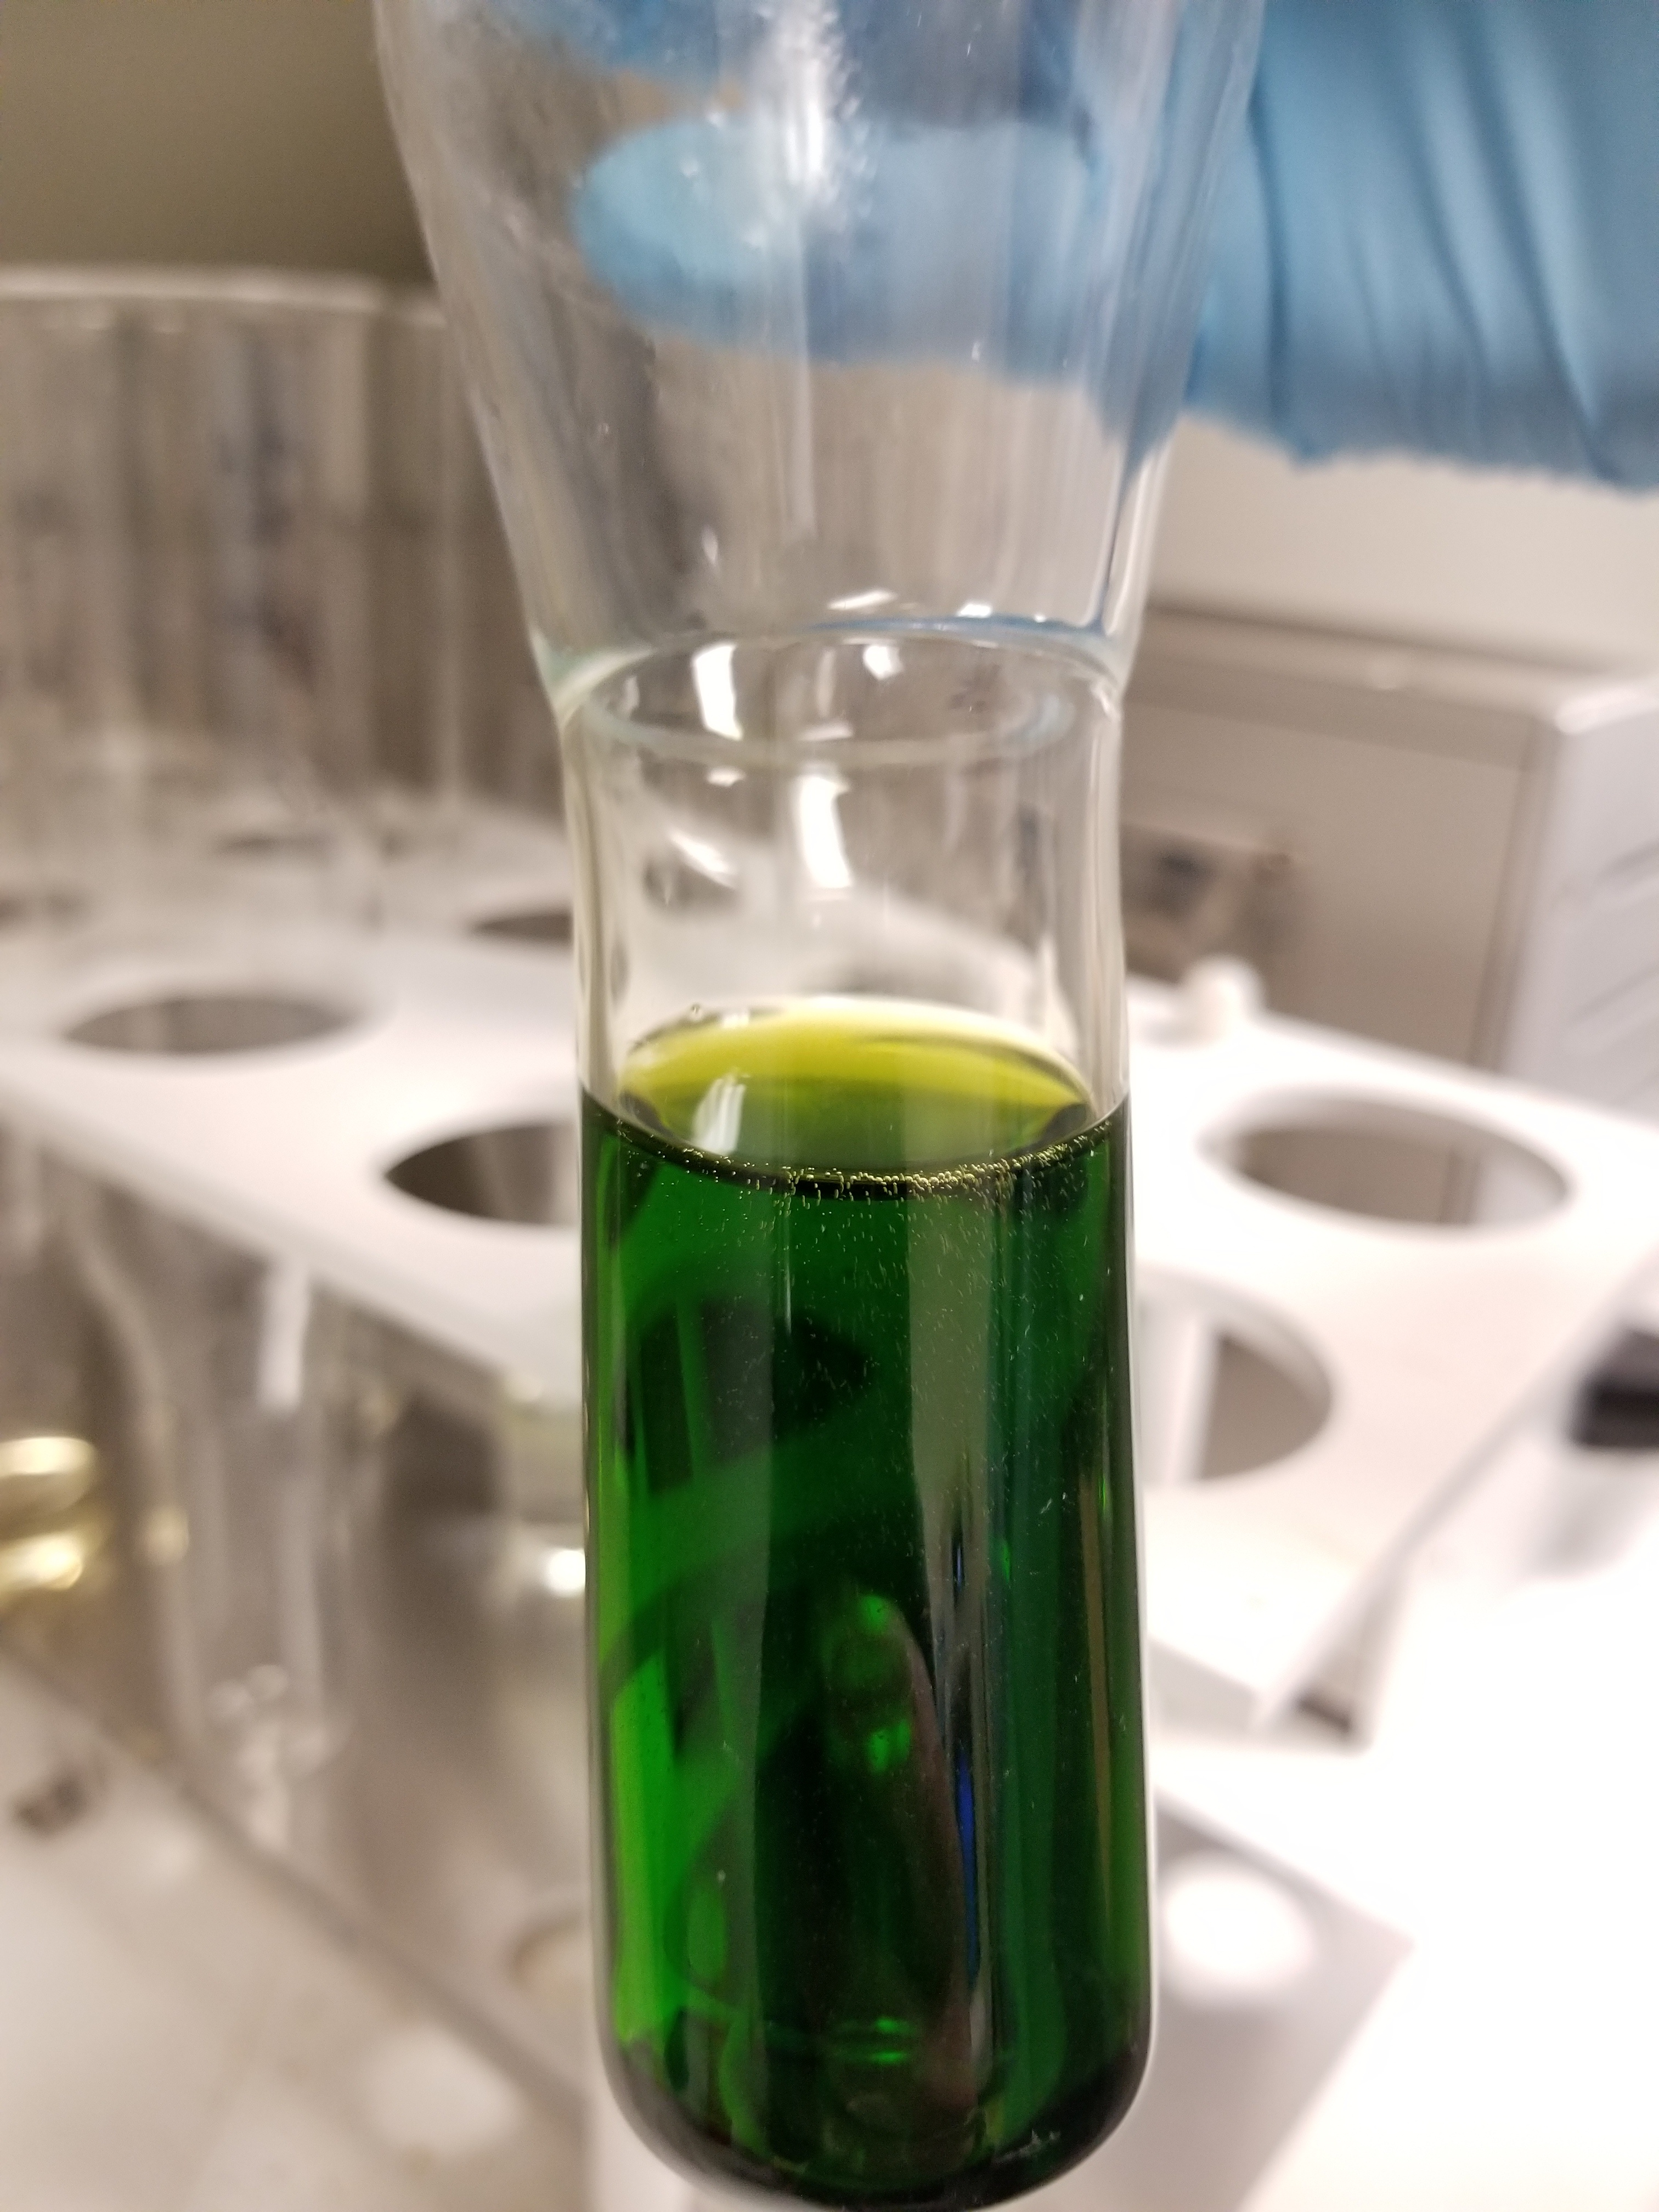 20180129_162151 Dilute with H2O and add 1 mL H2O2.jpg